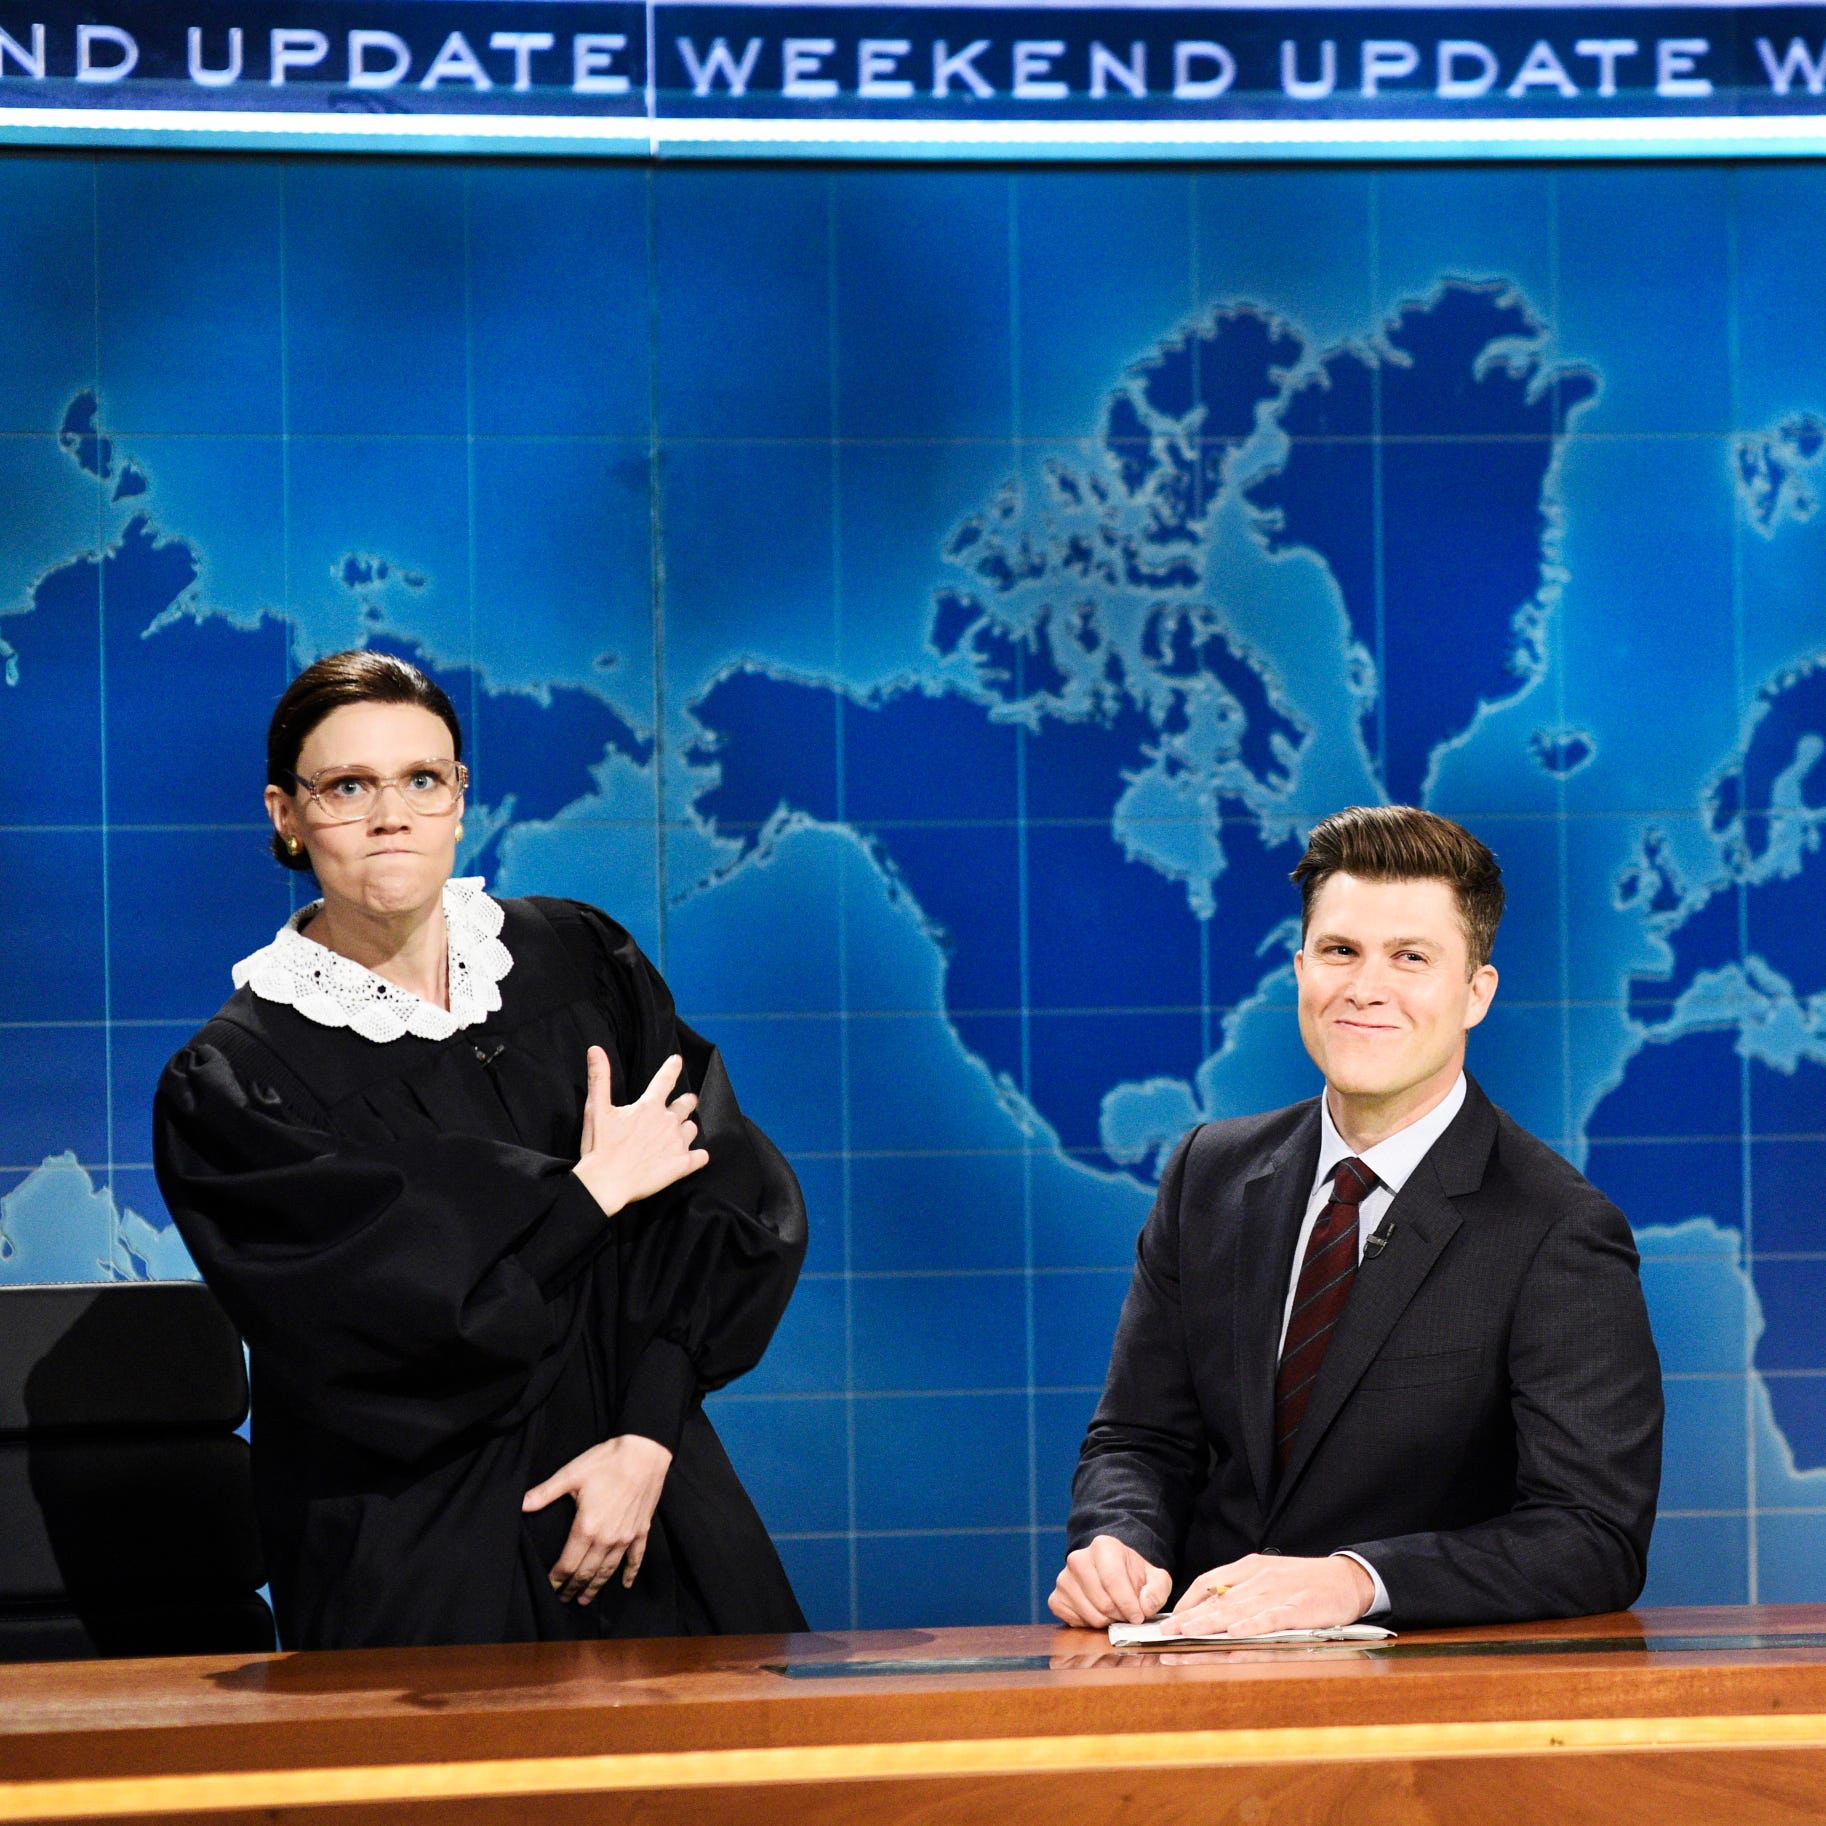 Kate McKinnon returned as Justice Ruth Bader Gisnburg.